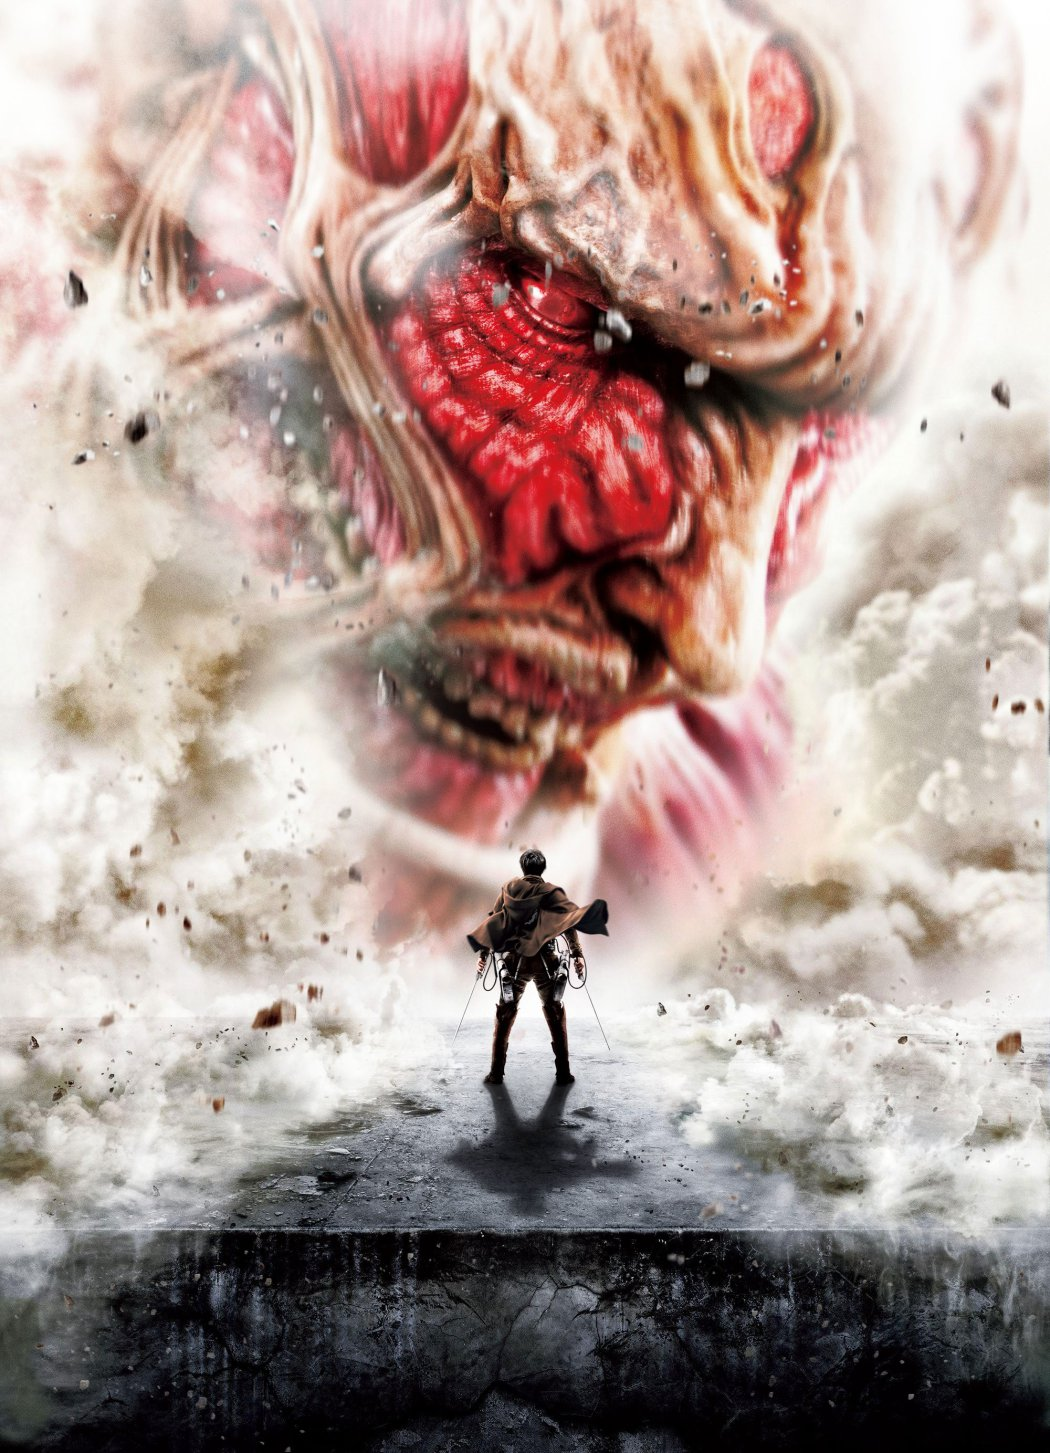 Attack on Titan live action movie visual